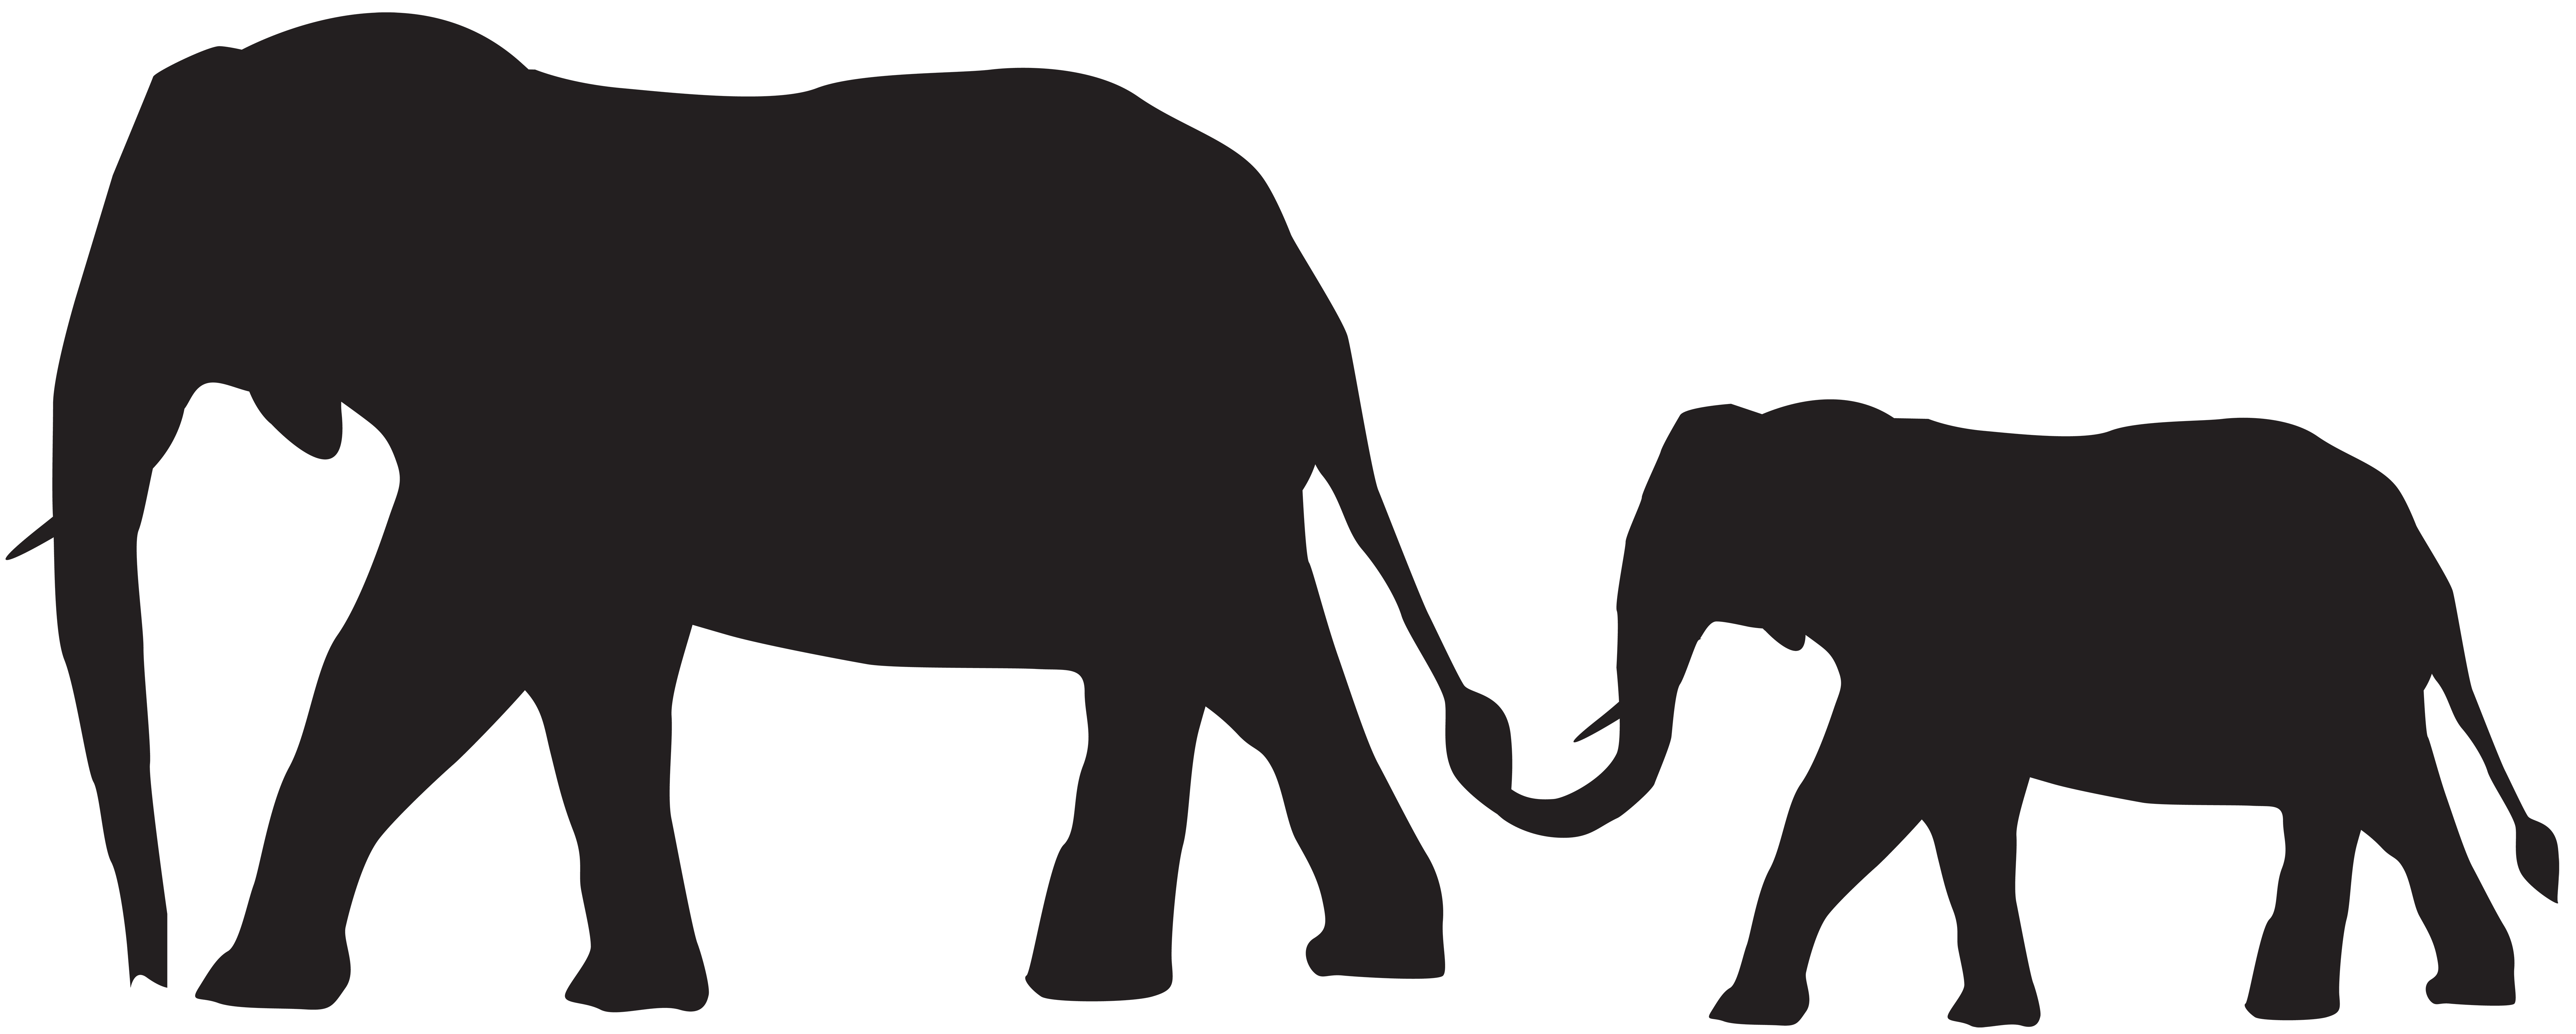 And baby elephants png. Mother clipart silhouette